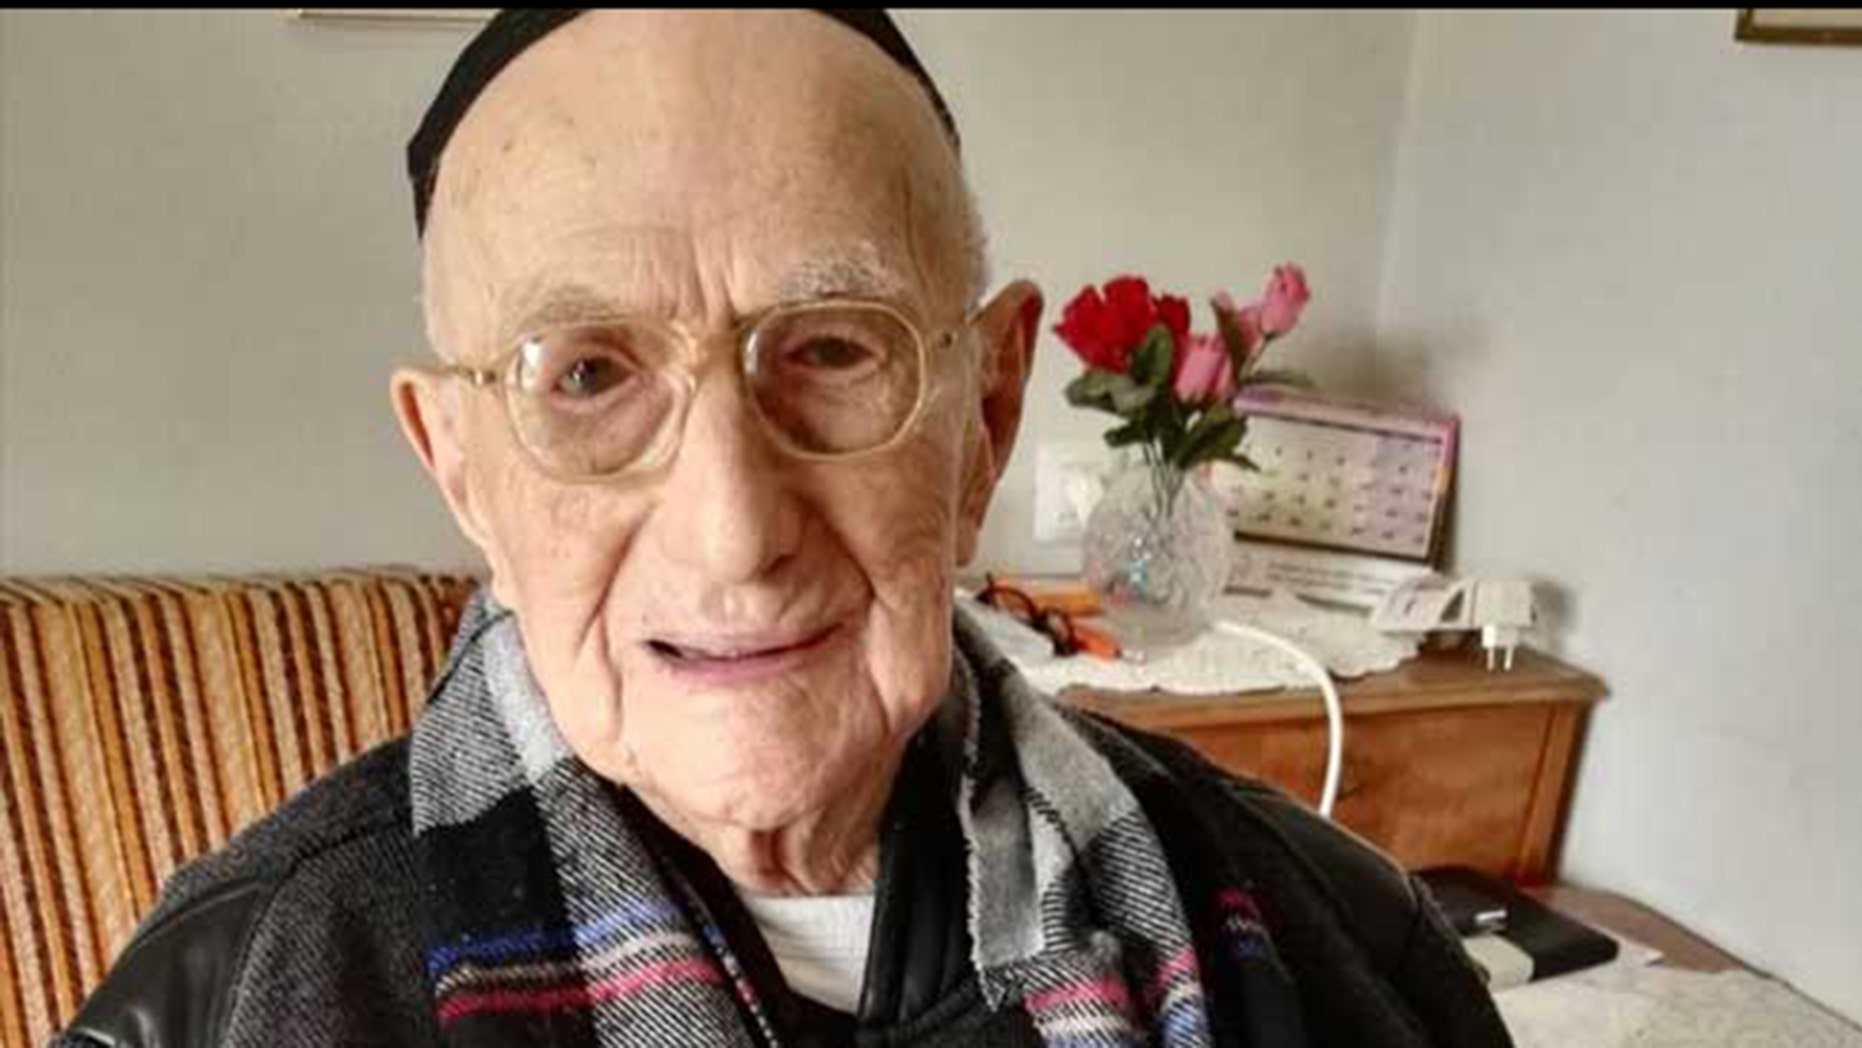 Israel Kristal, the world's oldest man and Holocaust survivor, has reportedly died a month shy of his 114th birthday.